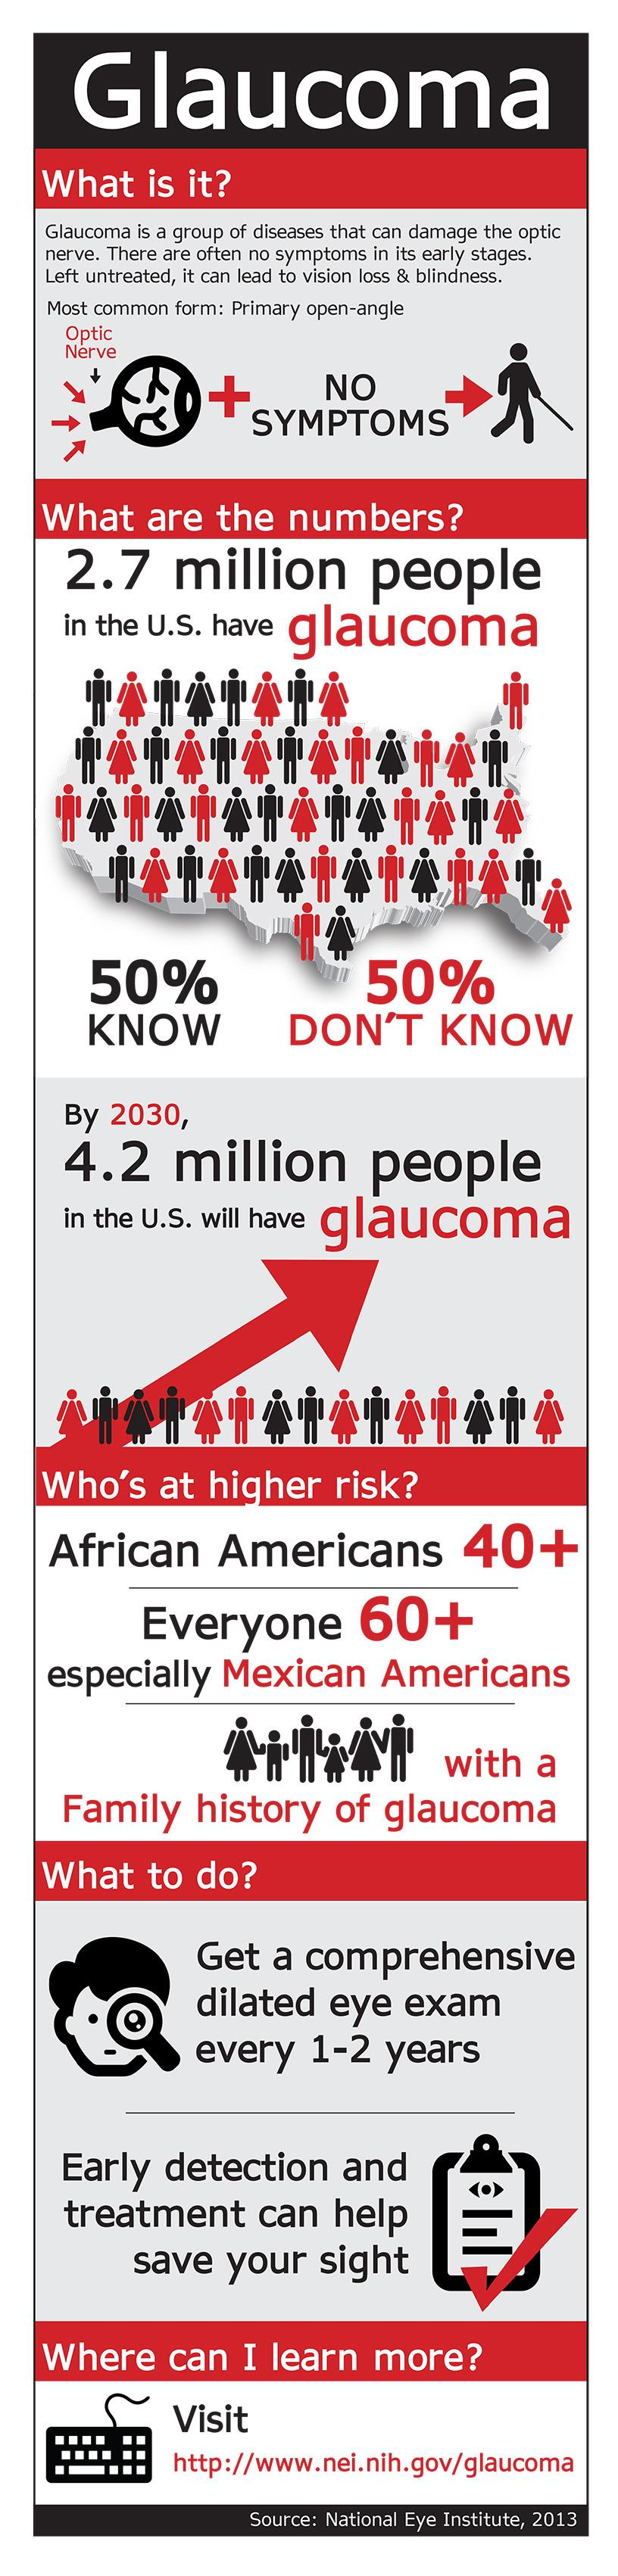 National Eye Institute (NEI) - Glaucoma infographic